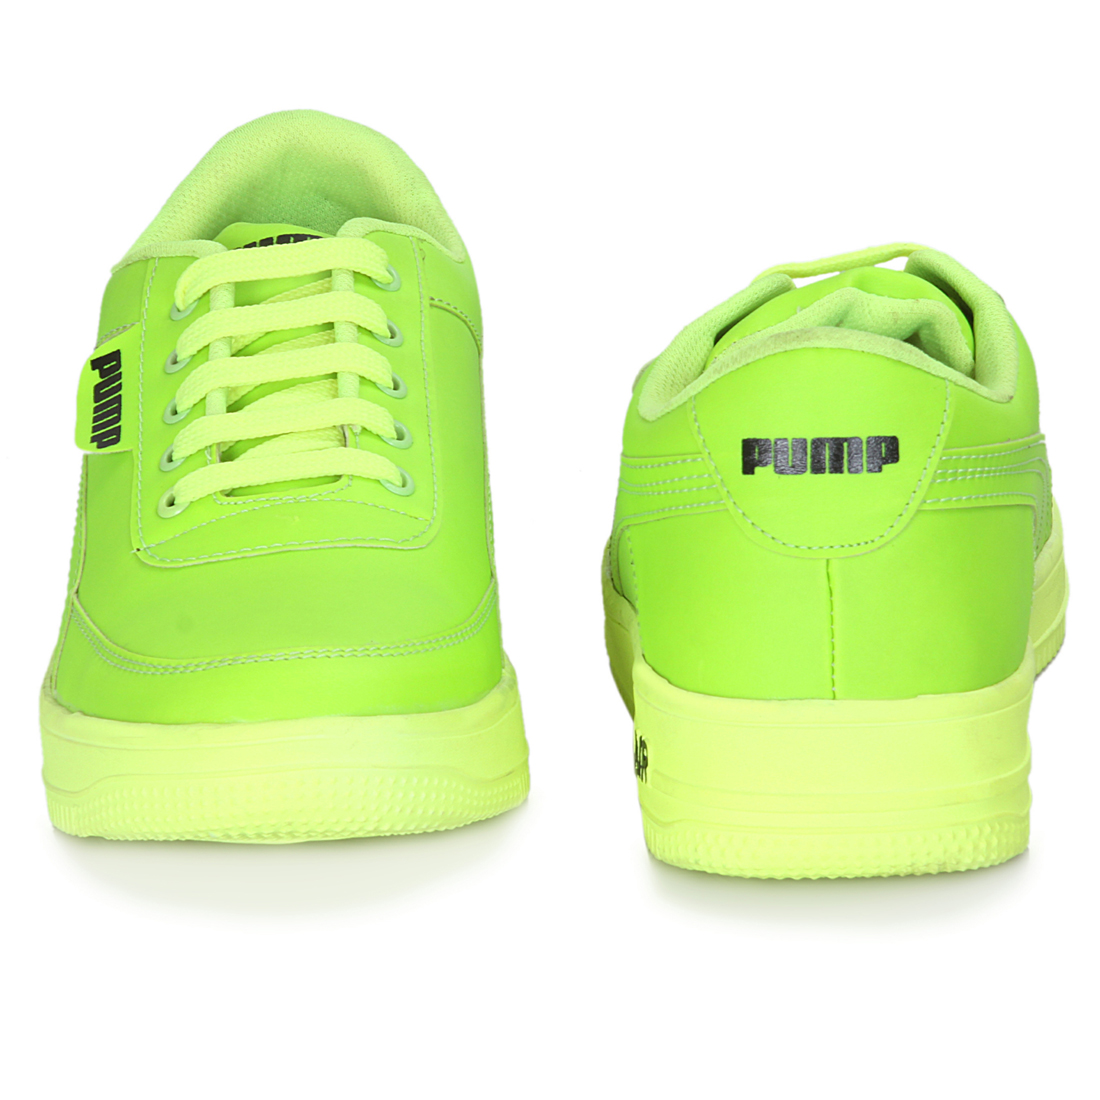 IMCOLUS375A.351_L.GREEN STYLESH & FANCY Casual Shoes SHOE FOR MEN'S IMCOLUS375A.351_L.G (LIGHT GREEN, 7-10, 4 PAIR)